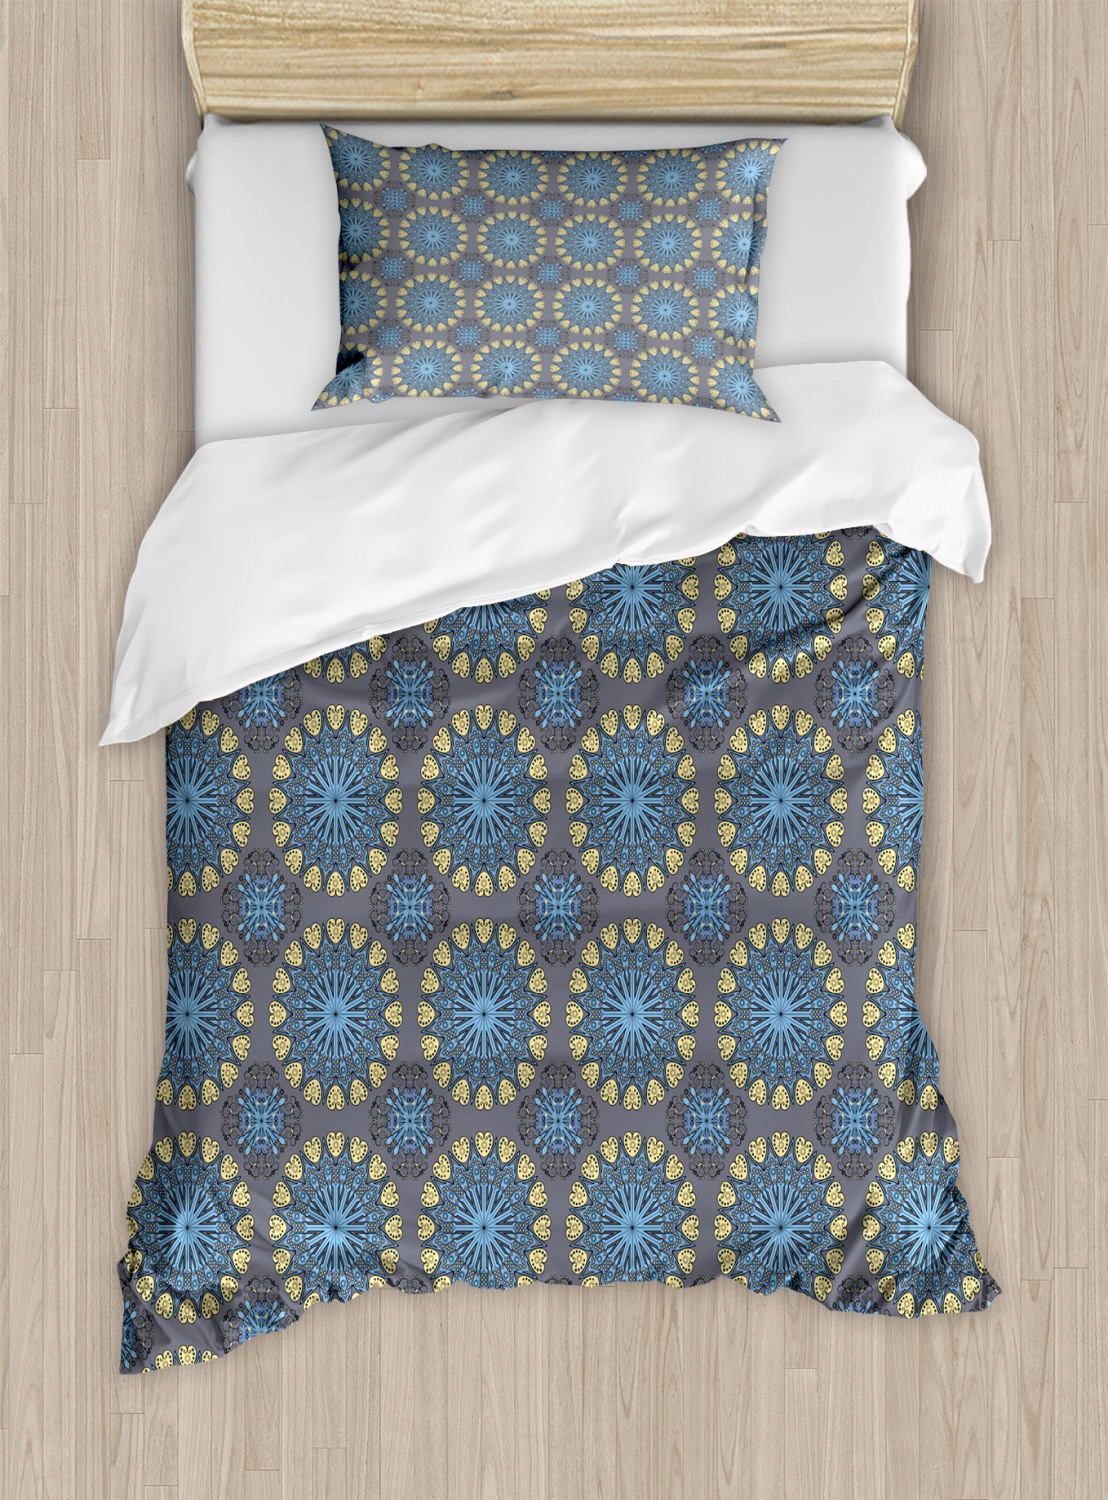 bohemian ethnic duvet cover set twin queen king sizes with pillow shams ebay. Black Bedroom Furniture Sets. Home Design Ideas